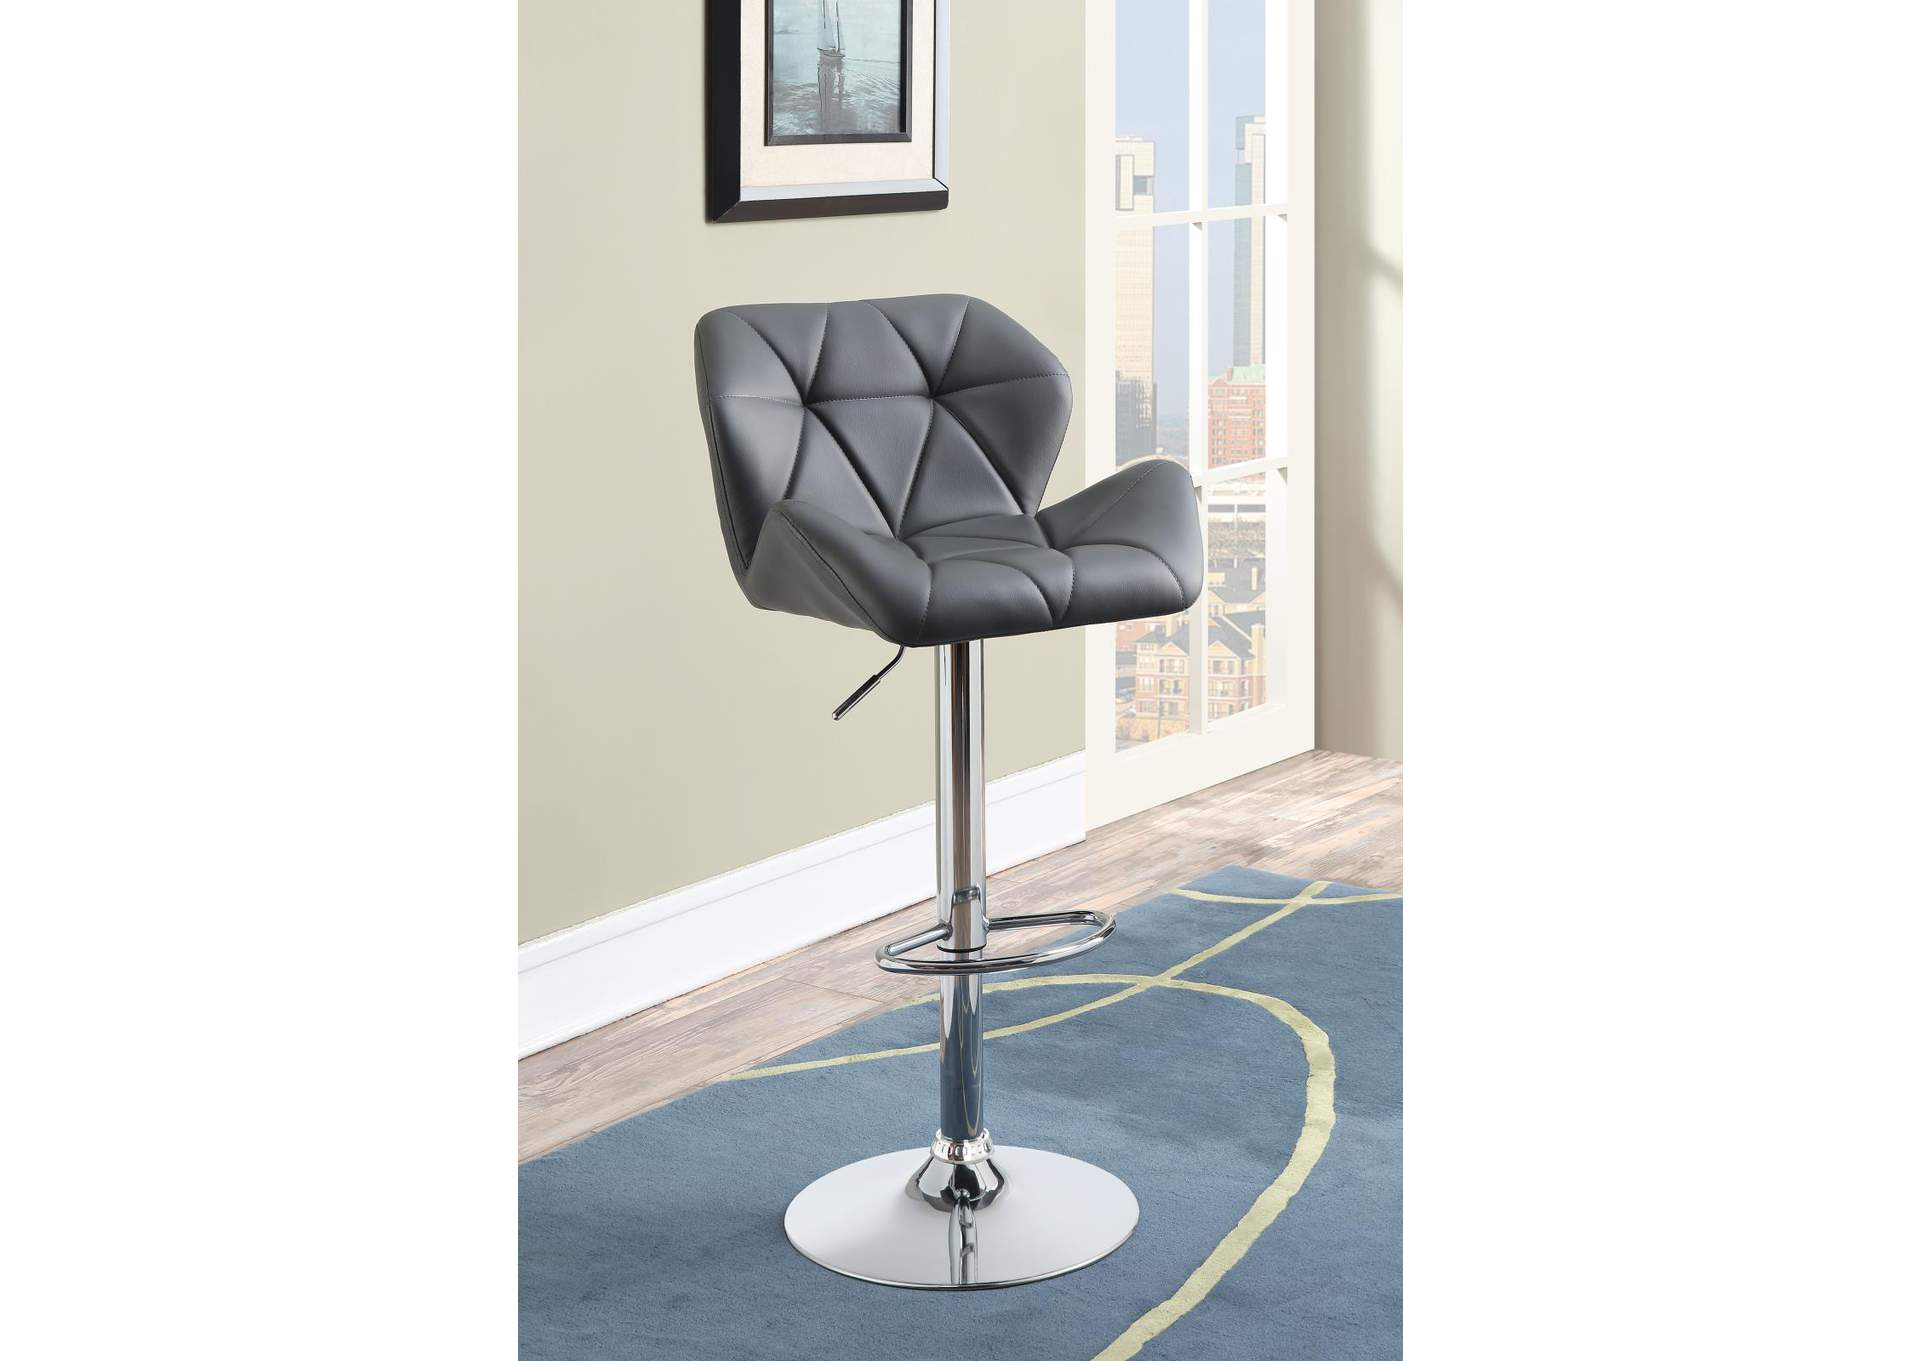 Cultured Pearl Contemporary Grey Adjustable Bar Stool,Coaster Furniture